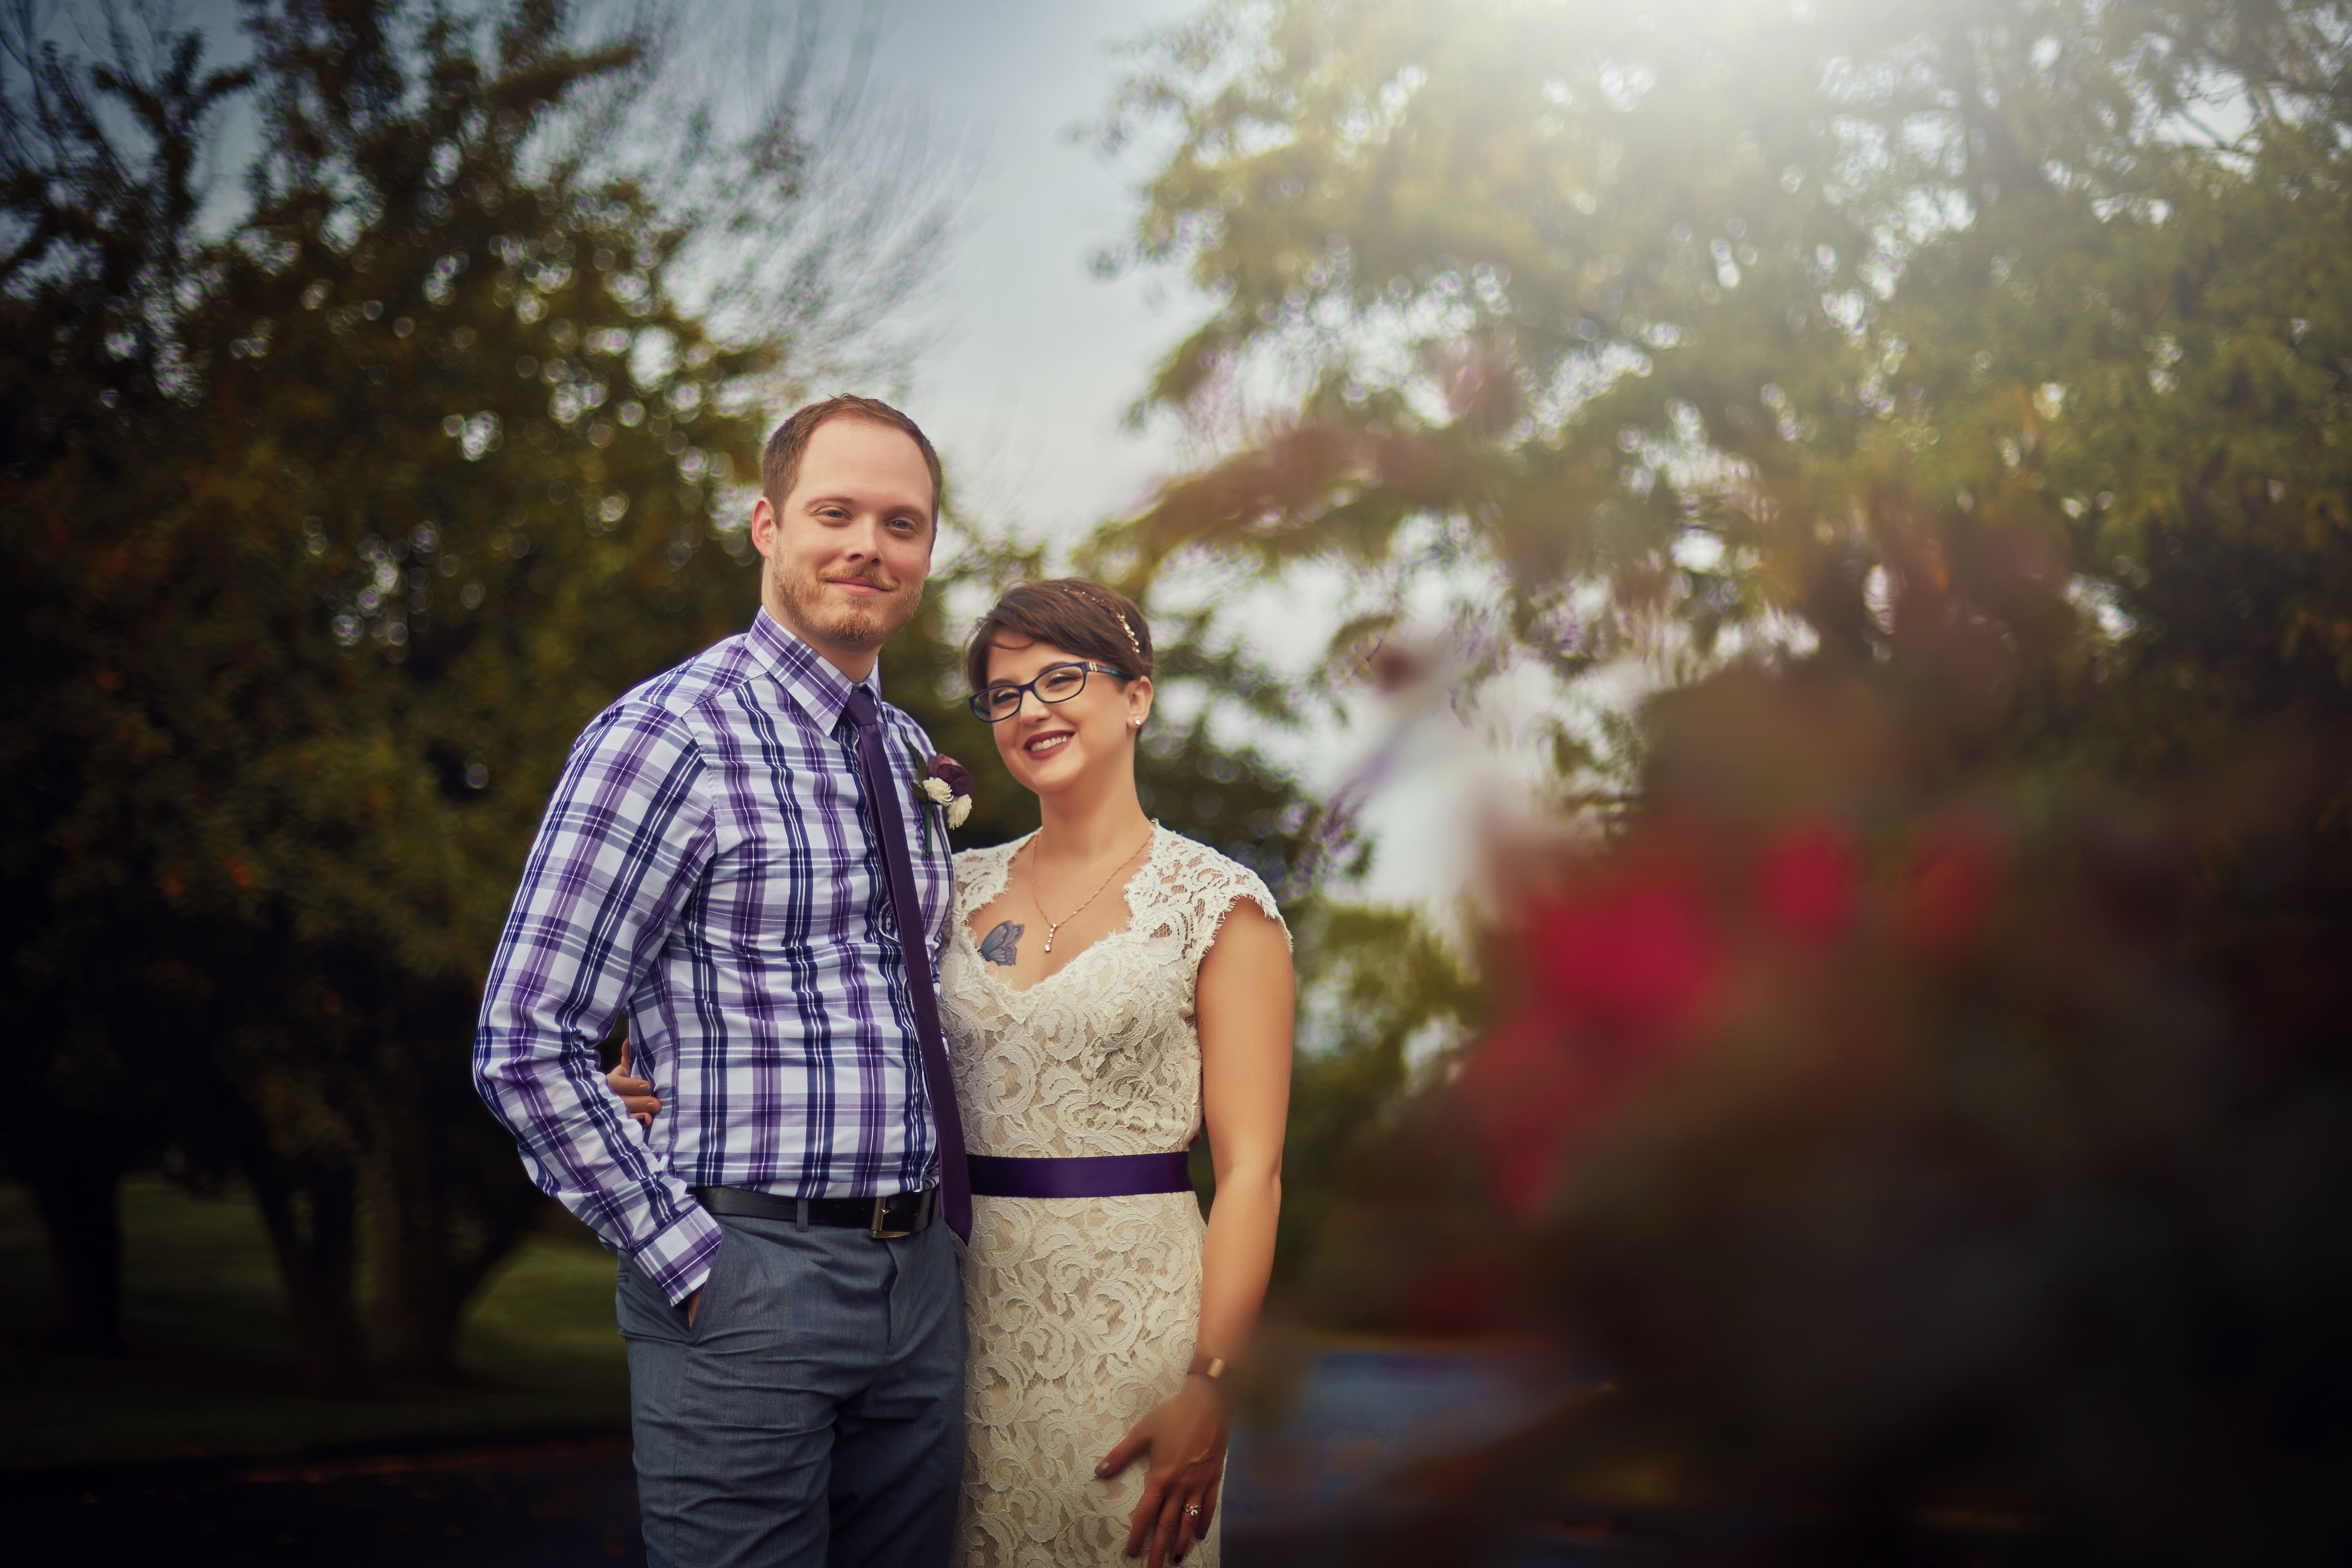 Memories at the Tradition Weddingwire